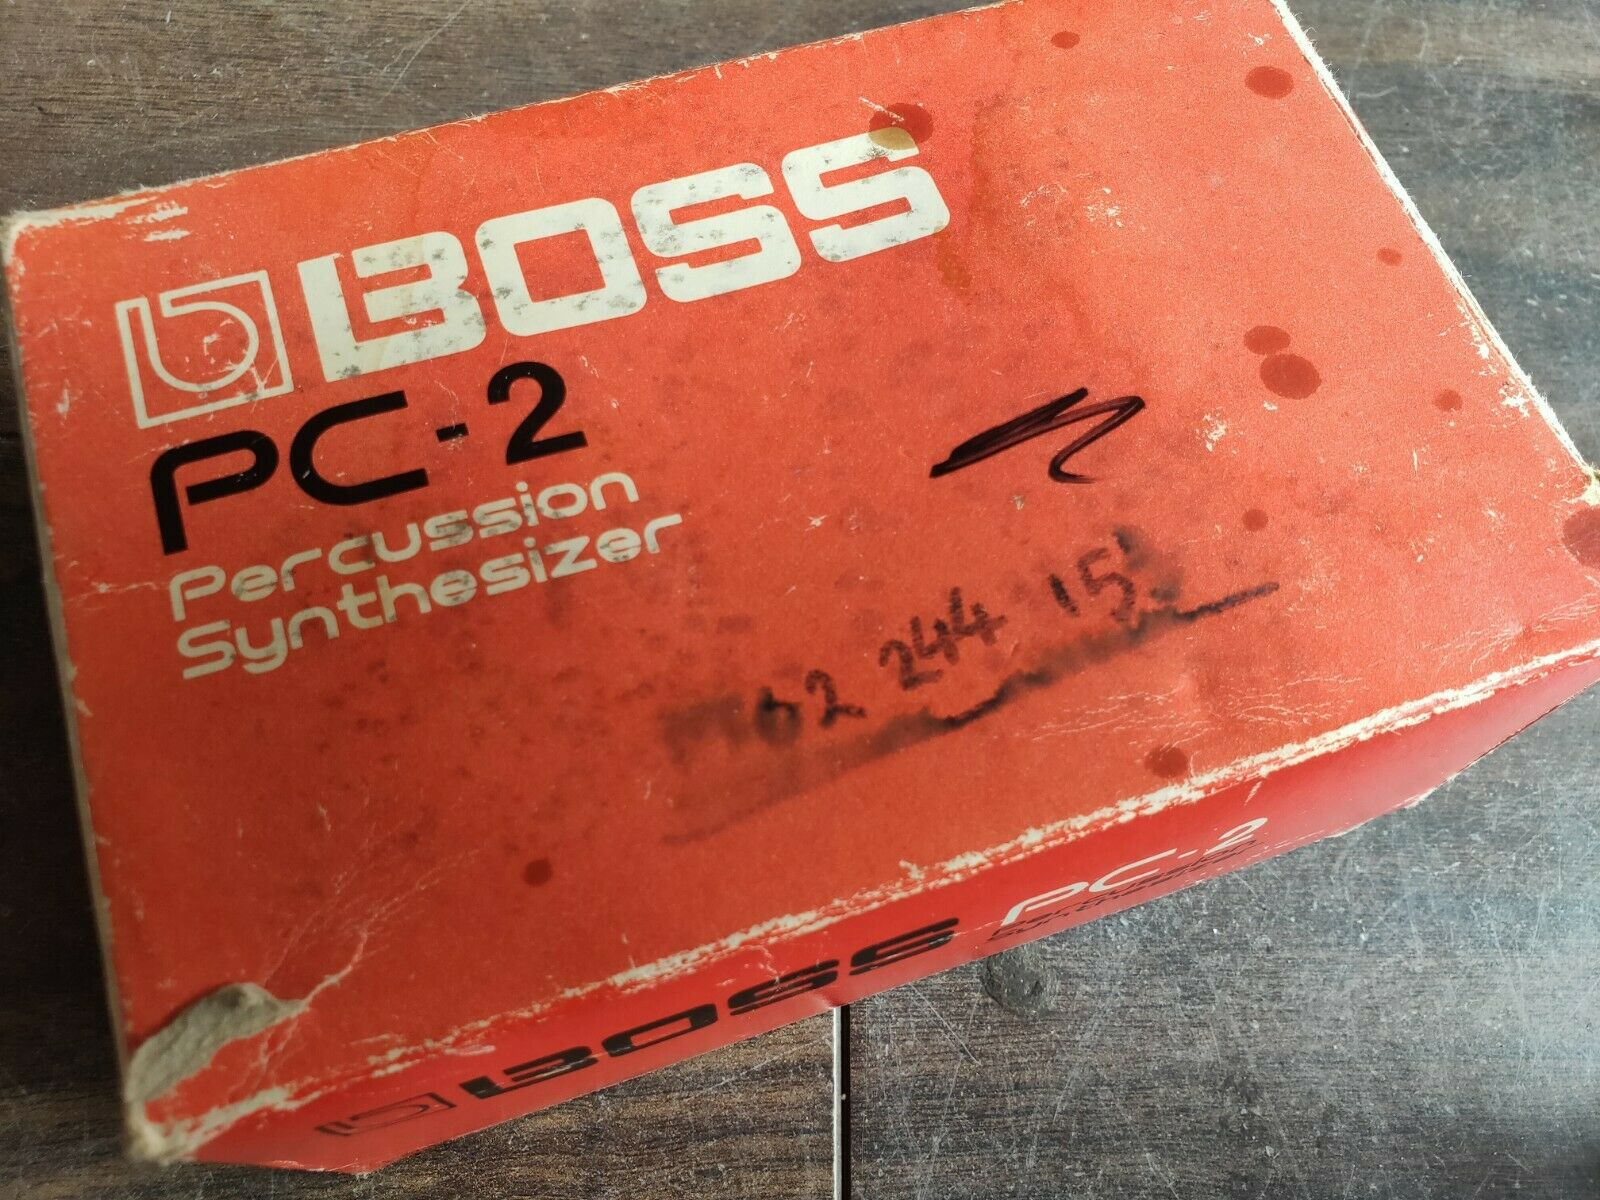 1984 Boss PC-2 Percussion Synthesizer Vintage Drum Machine w/Box